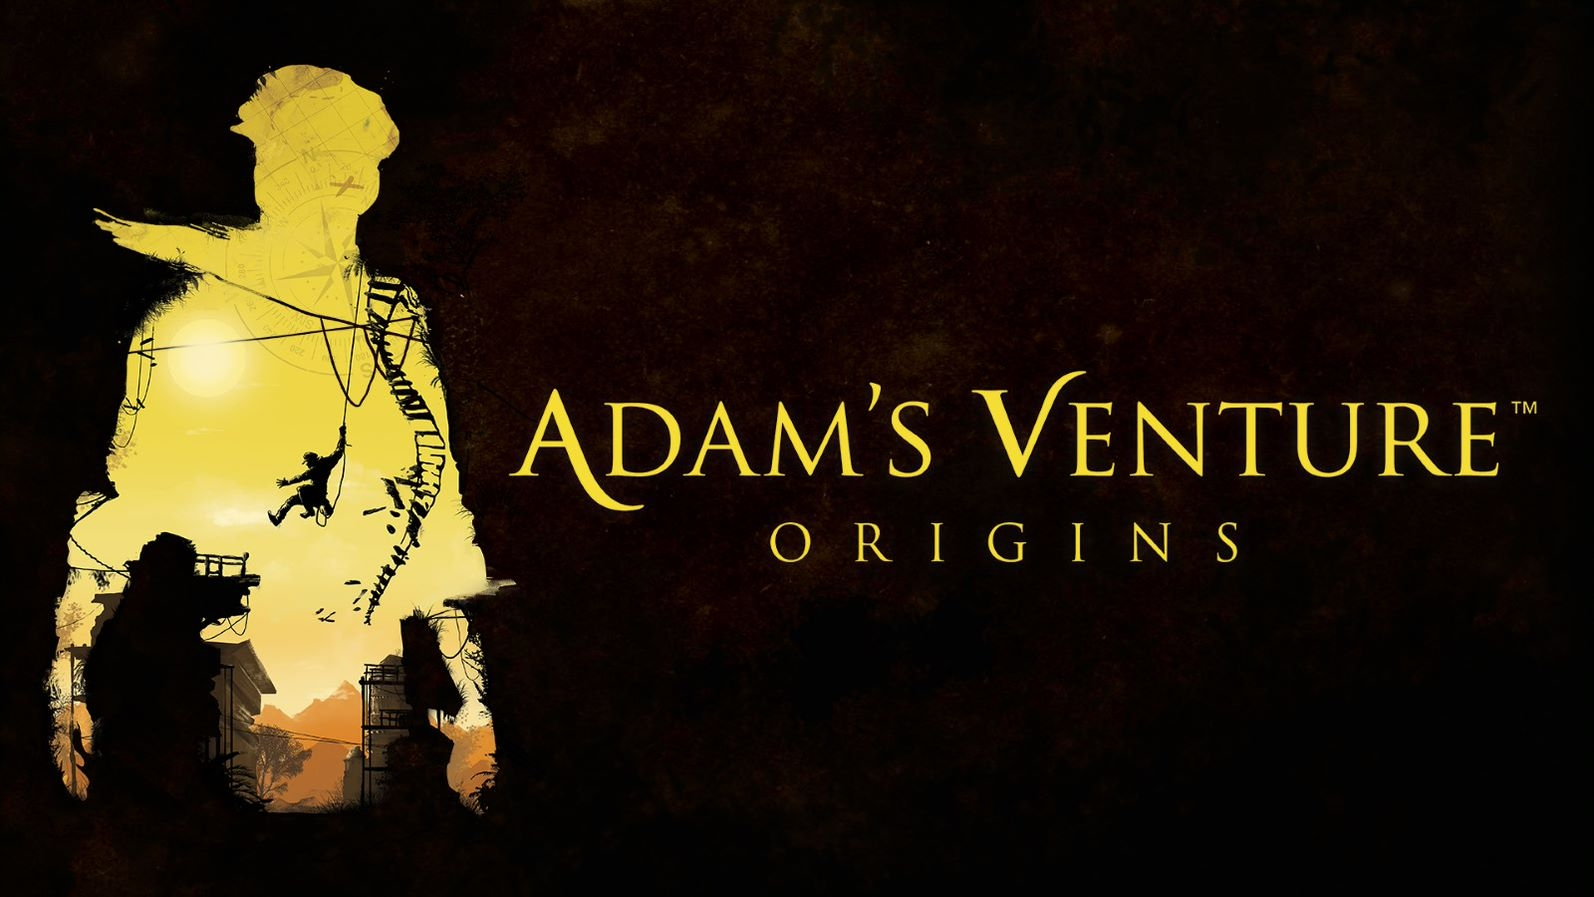 Adam's Venture: Origins Gets A Physical Nintendo Switch Release On September 25